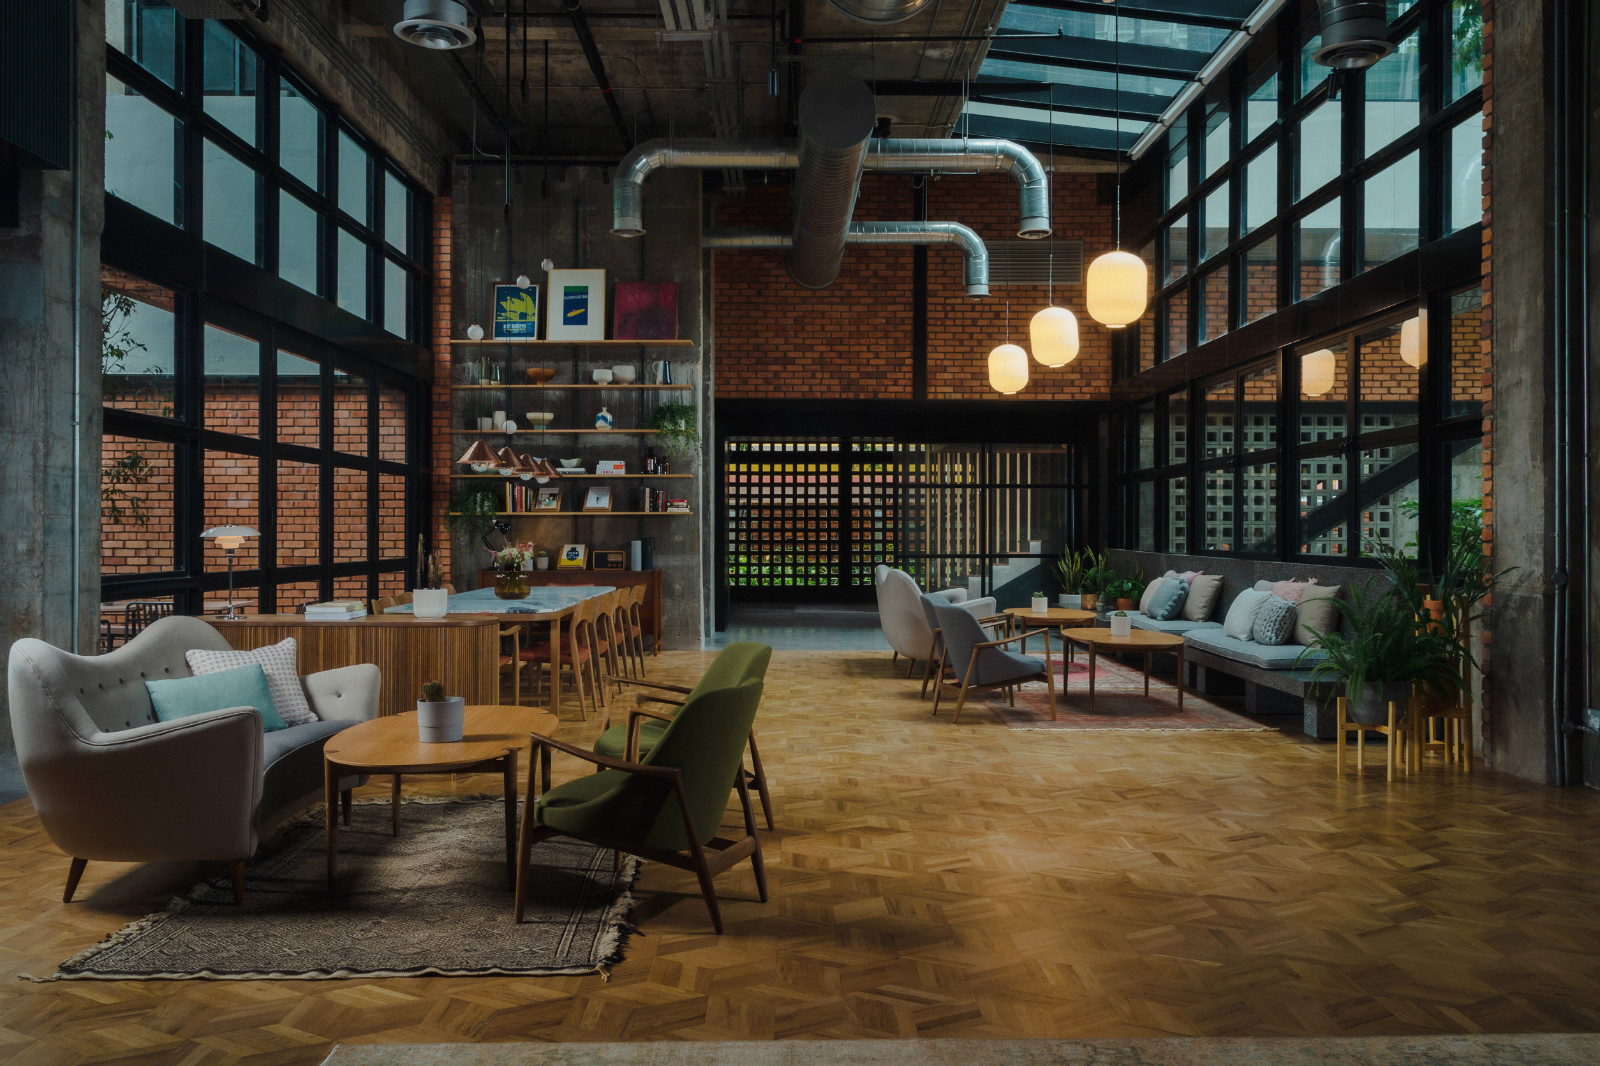 KLOÉ HOTEL IS AN URBAN OASIS FOR CREATIVE NOMADS  news cover image